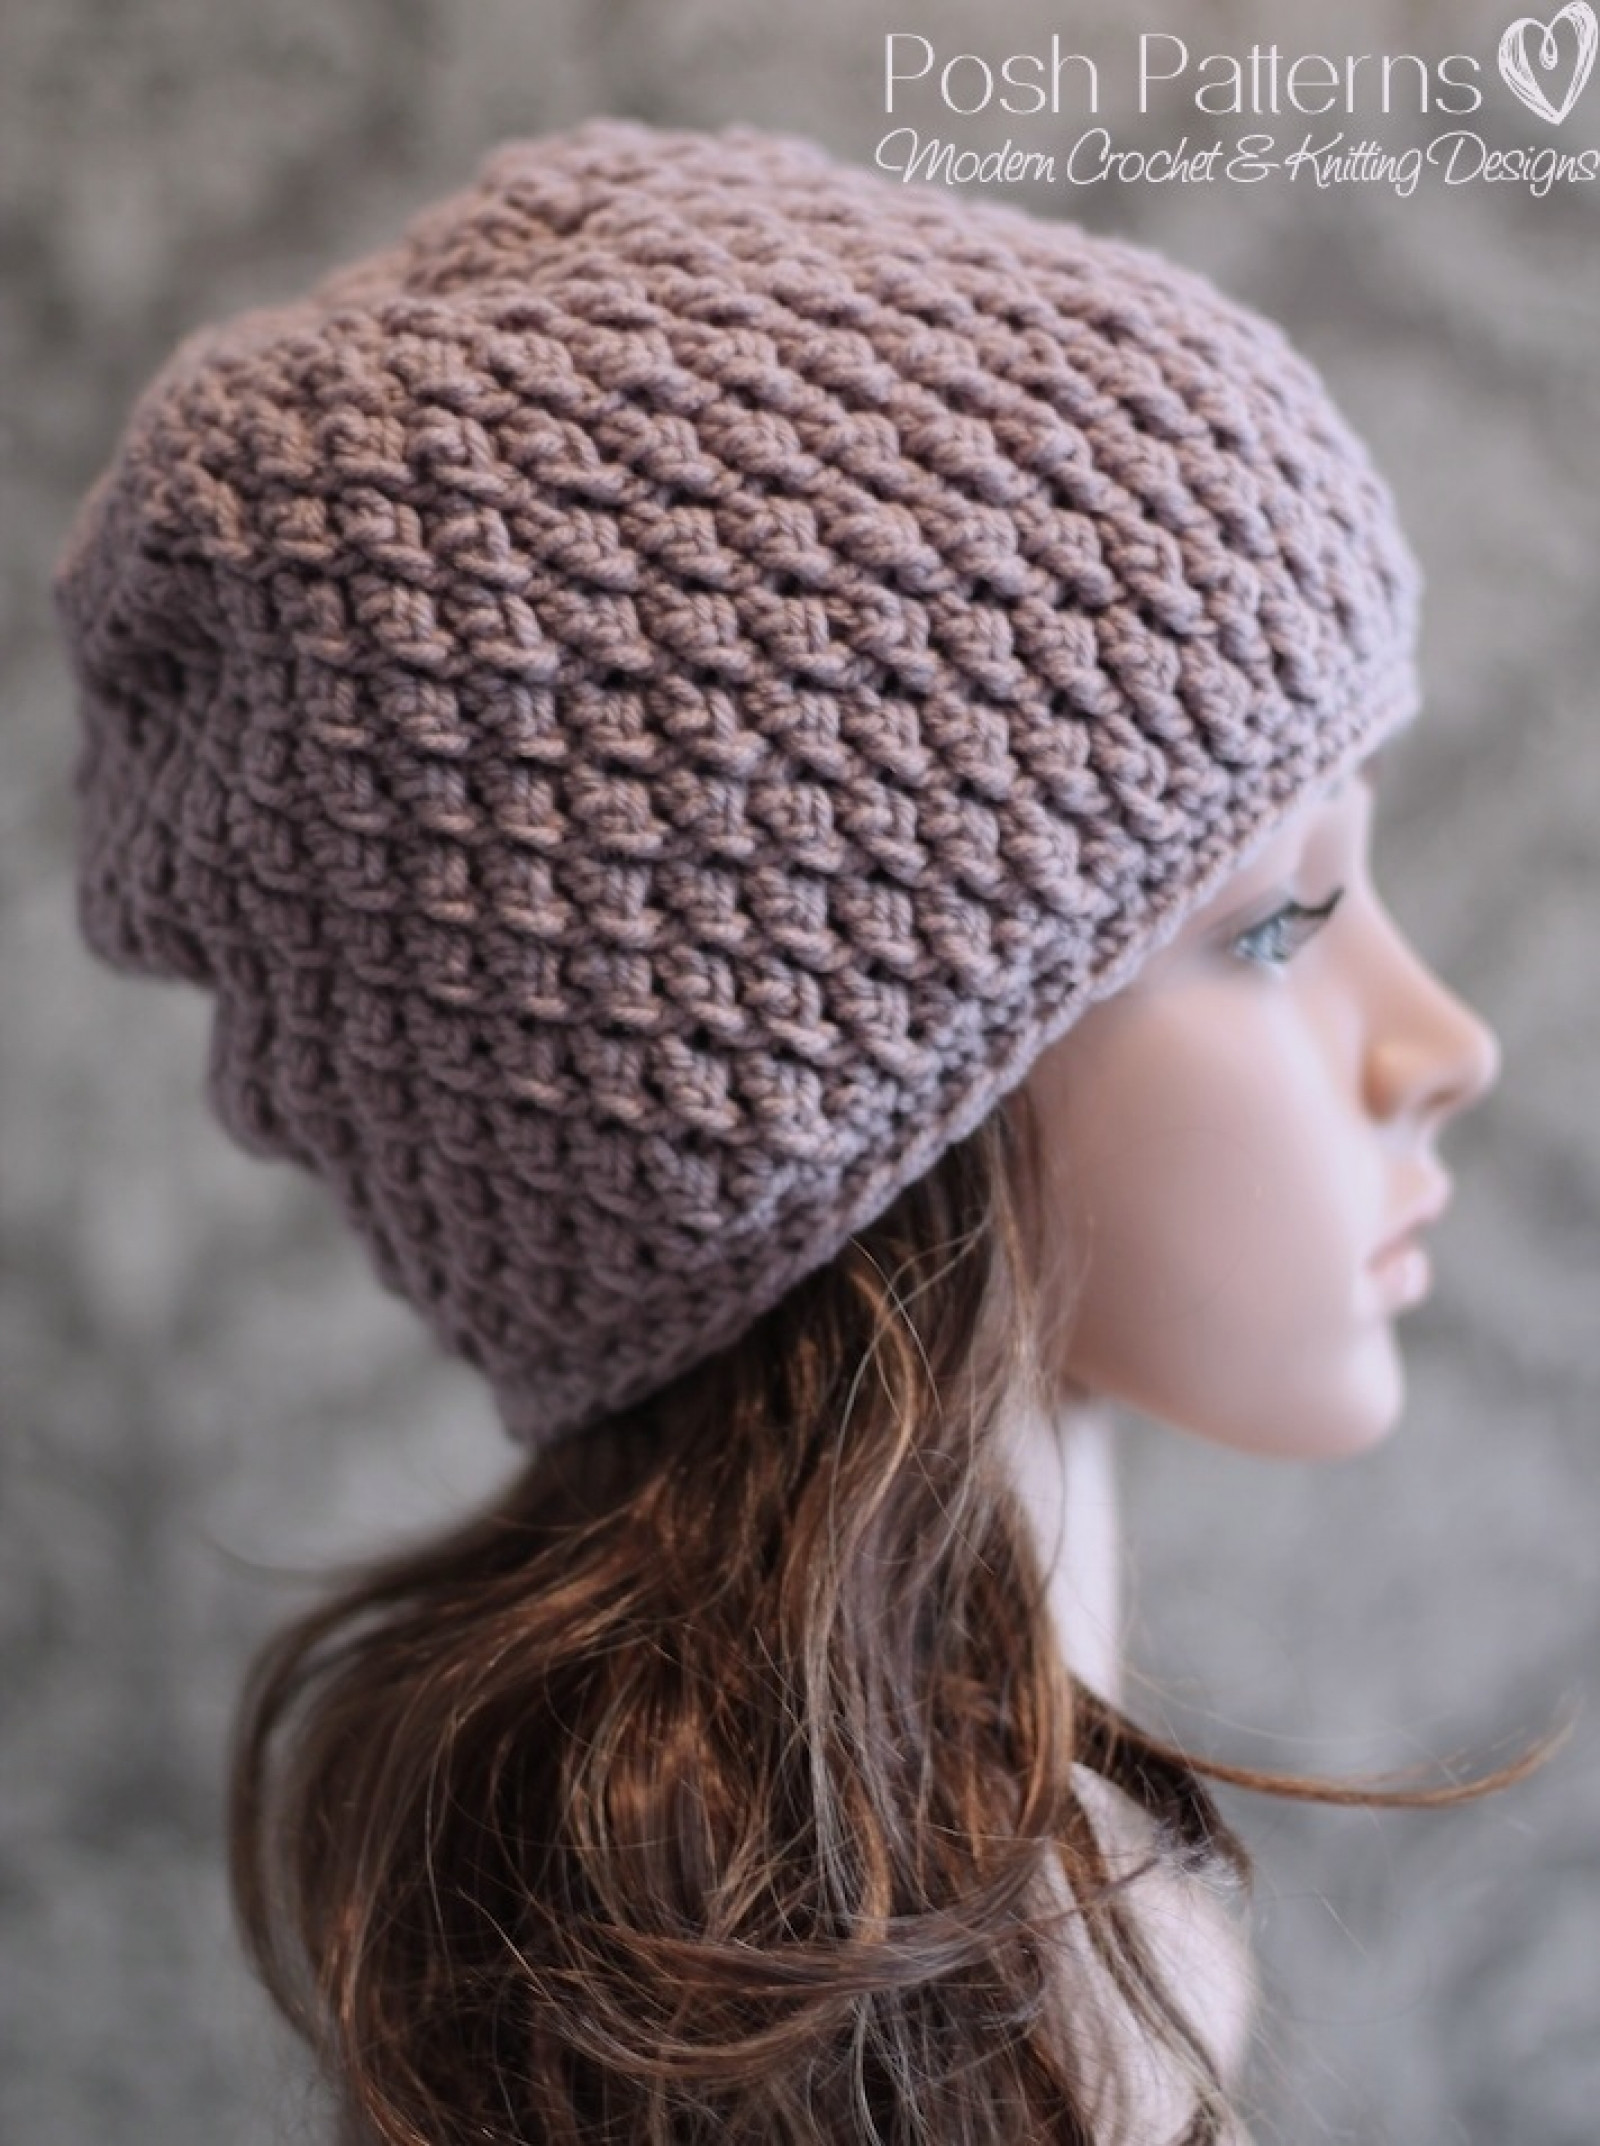 Crochet Beanie Hat Lovely Slouchy Hat Crochet Pattern Faux Cable Beanie Of New 50 Images Crochet Beanie Hat